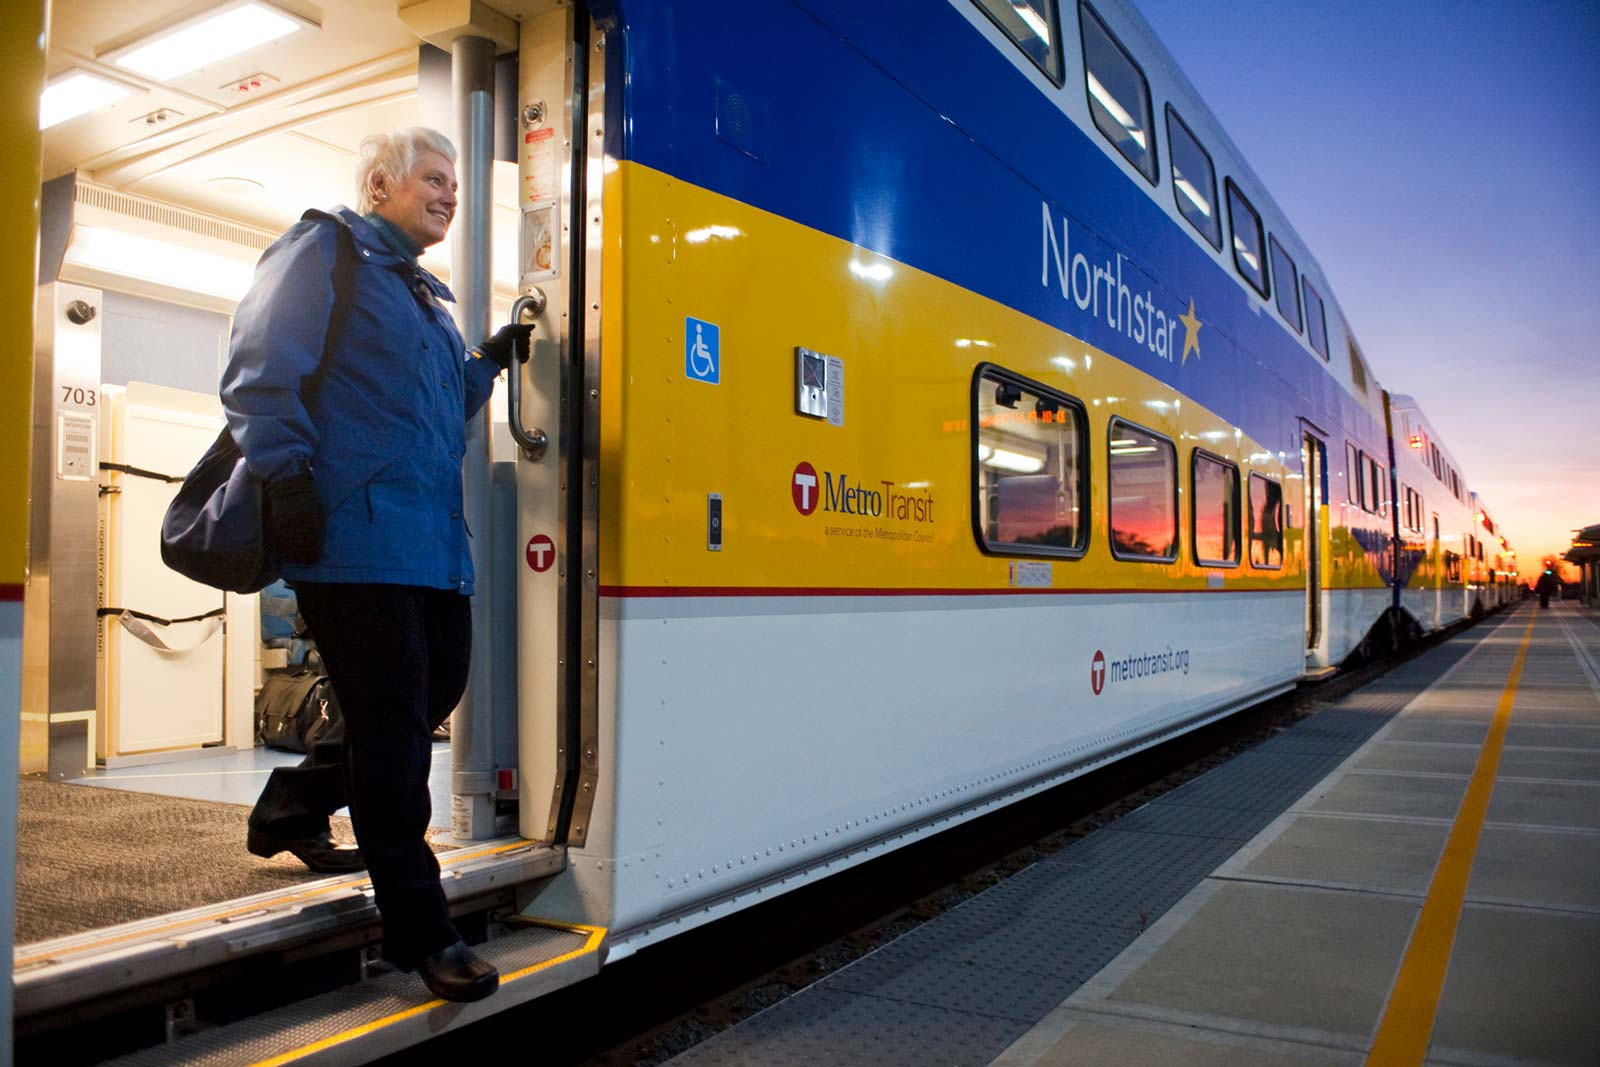 Content, happy gray-haired man stepping off the modern Northstar commuter train